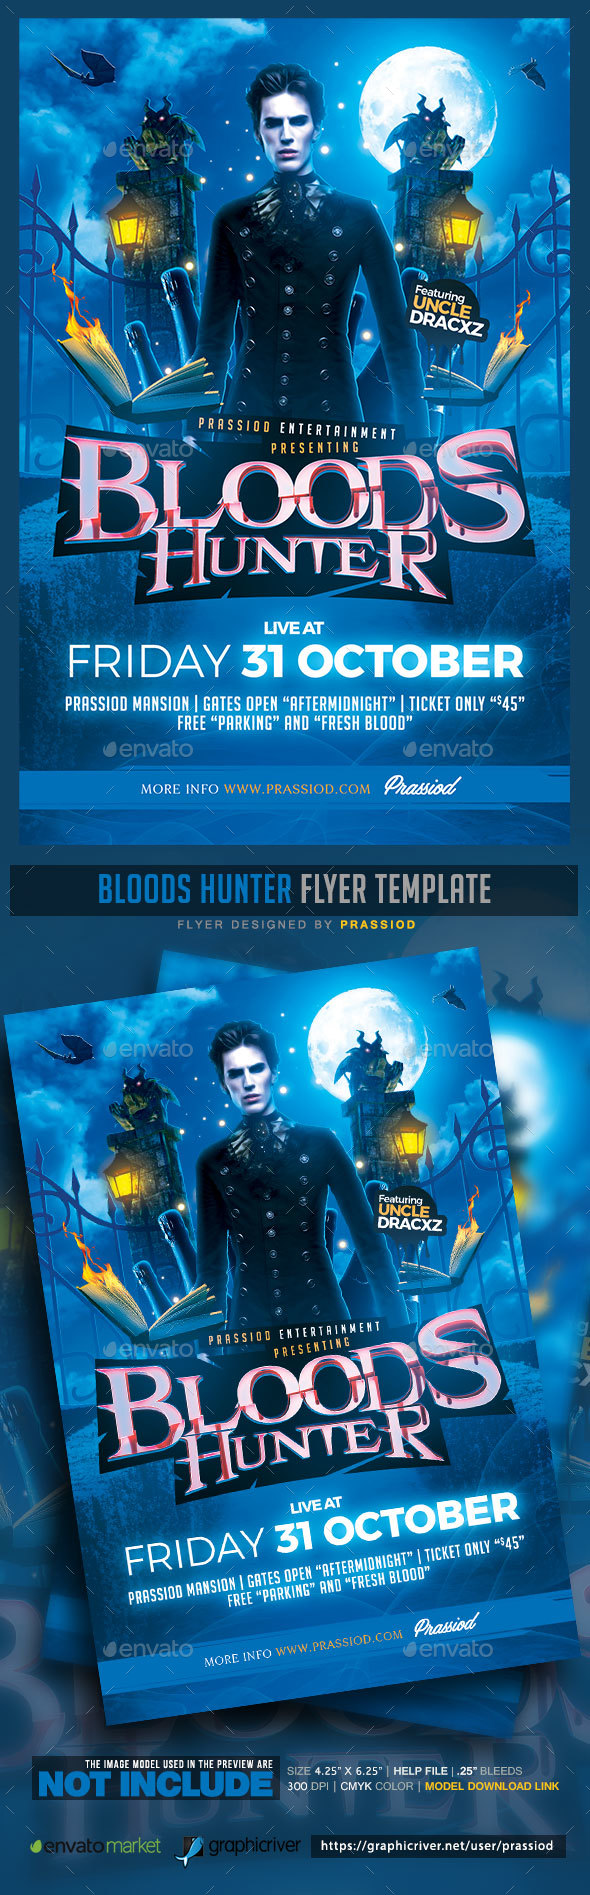 Bloods Hunter Flyer Template - Events Flyers